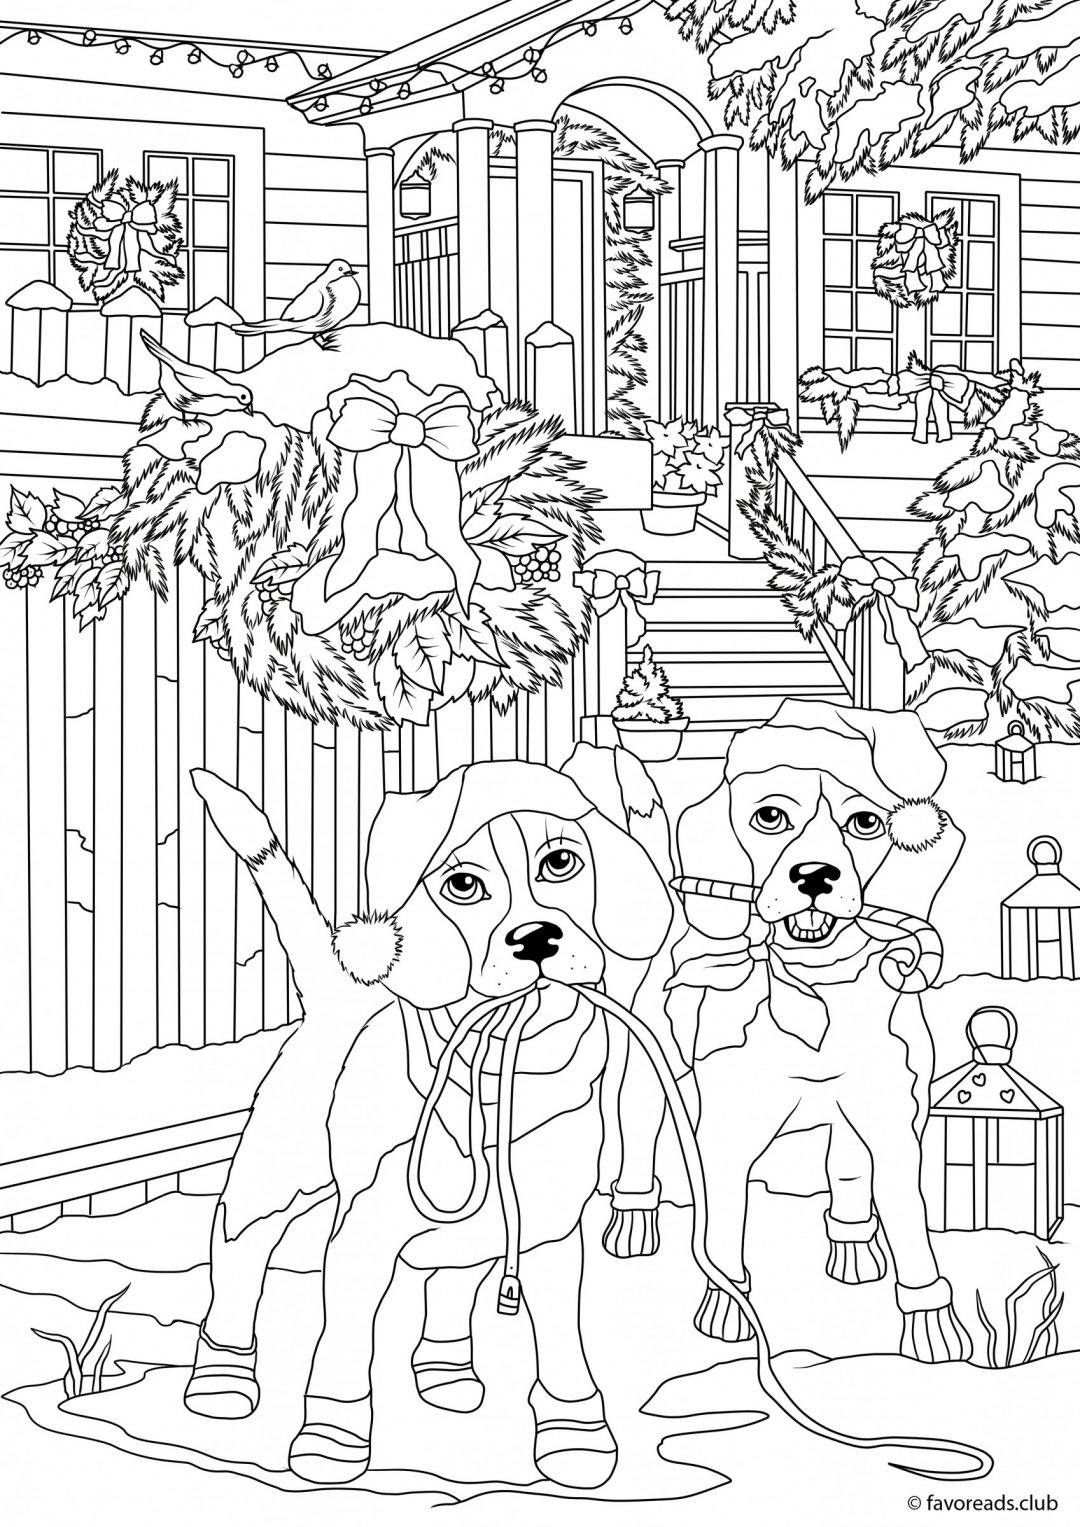 The Best Free Adult Coloring Book Pages | Coloring pages ...